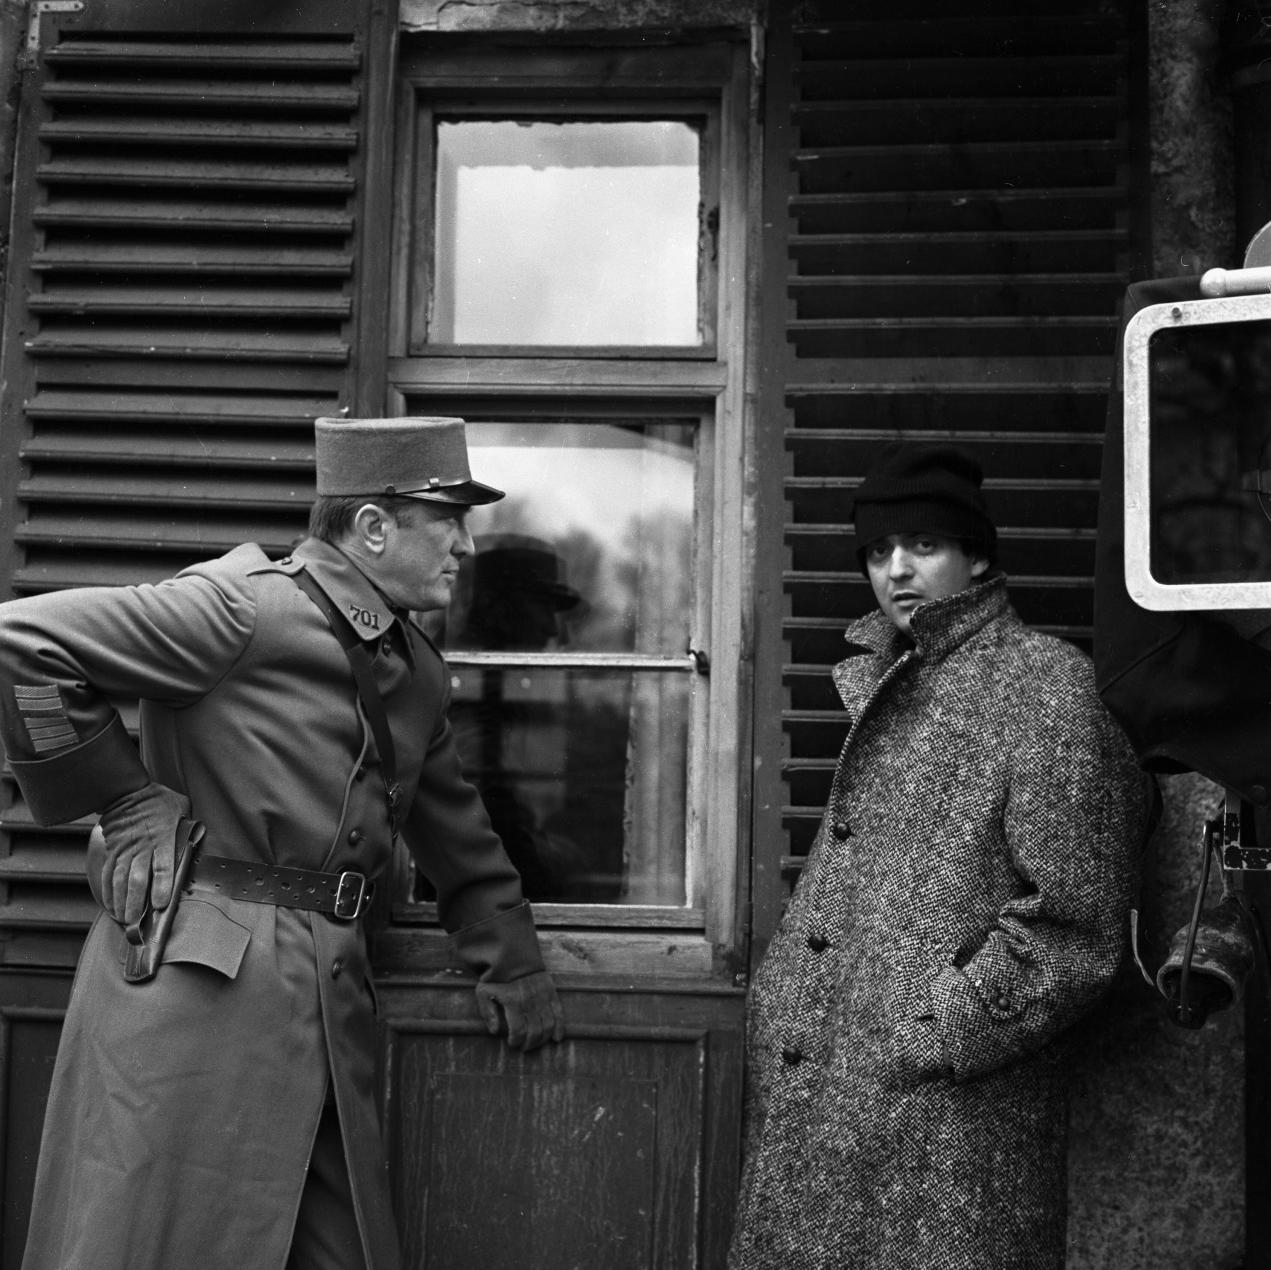 Stanley Kubrick: 'Paths Of Glory': Stanley Kubrick's First Step Towards